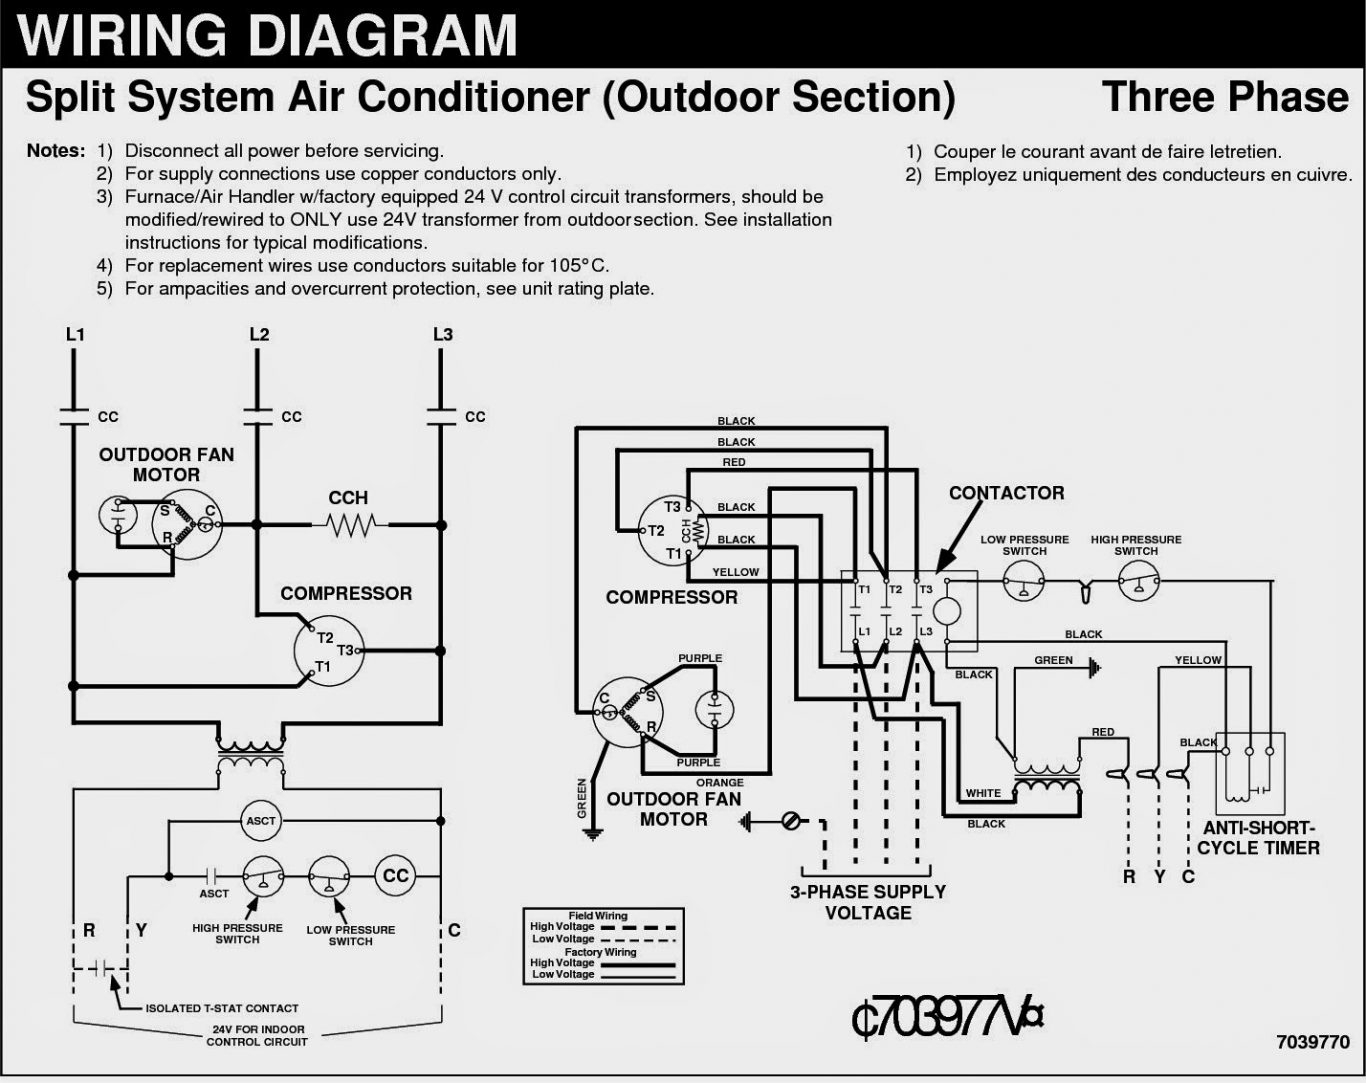 Wire Spa Wiring Diagram Pump on 3 phase wiring diagram, hayward wiring diagram, cal spa ps4 parts diagram, waterway spa pumps diagram, 1993 cal spa plumbing diagram, heater wiring diagram, pool wiring diagram, hot tub wiring diagram, leeson wiring diagram, spa wiring schematic, spa pump motor diagram, motor wiring diagram, marquis spa parts diagram, 230v single phase wiring diagram, spa heater wiring, fasco wiring diagram, spa plumbing diagram 2 pumps, spa pump parts diagram, electrical schematic wiring diagram,